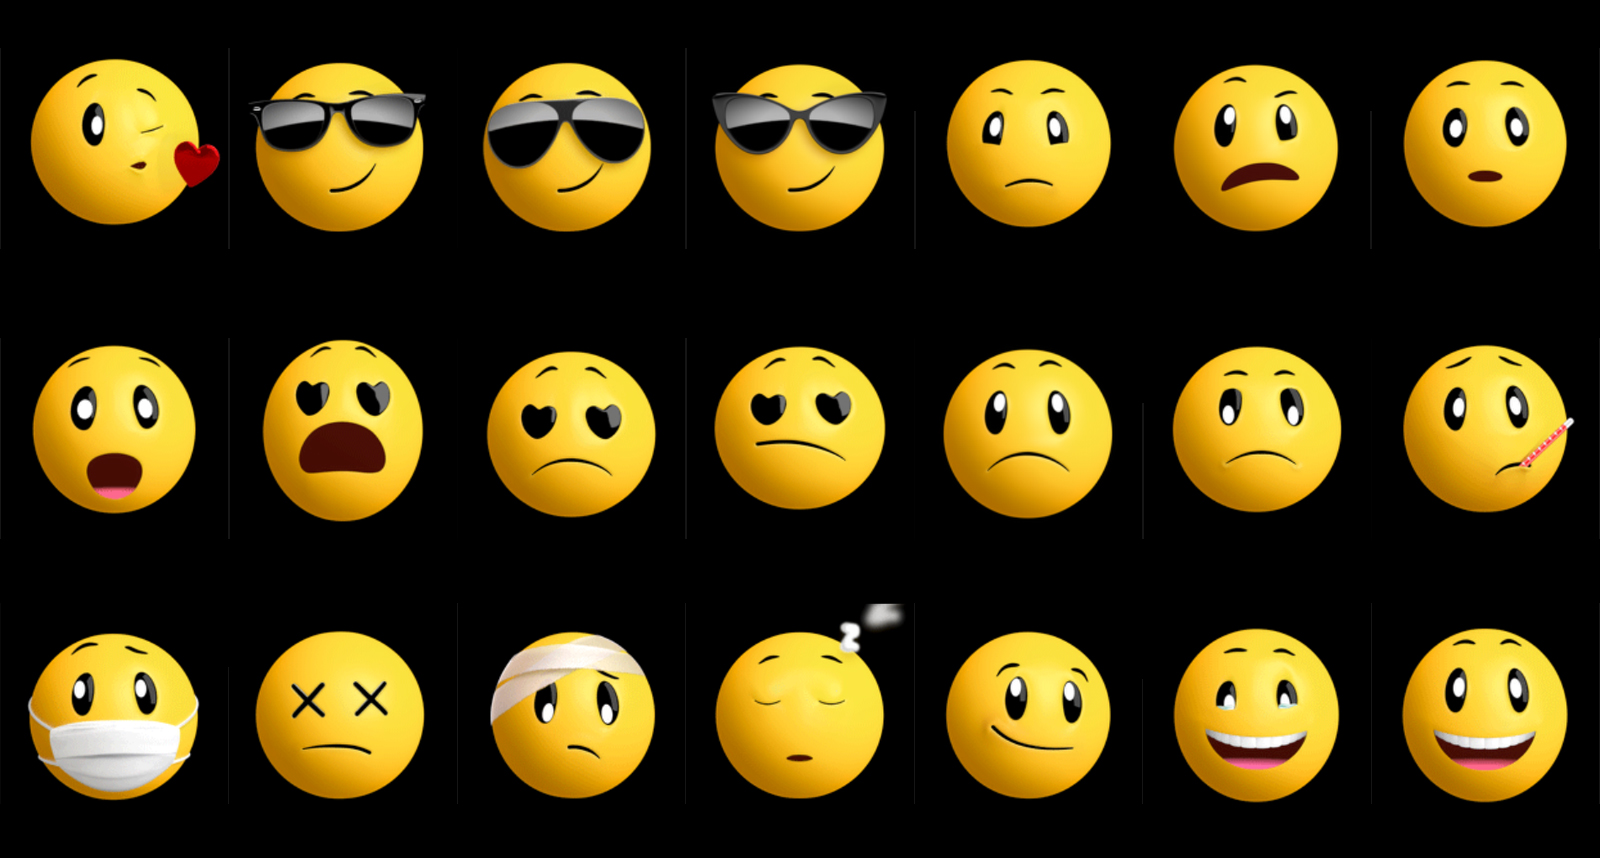 watchOS-2-new-animated-emoji-smileys